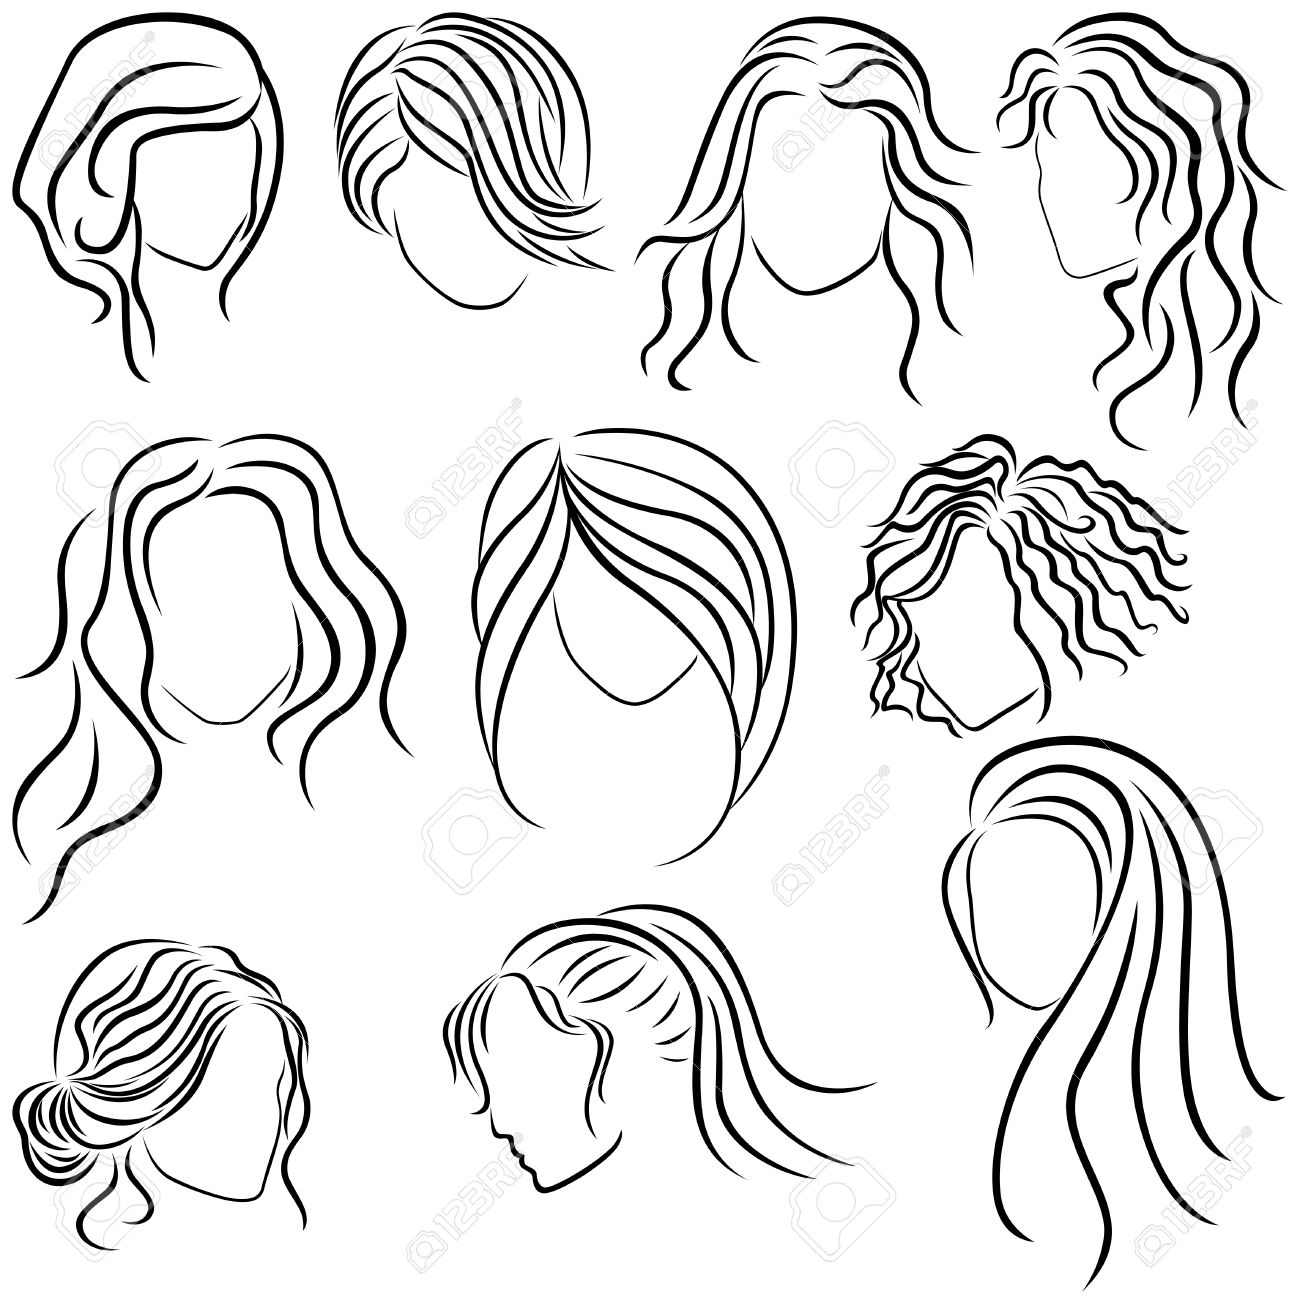 1300x1300 Hairstyles For Women, Set Of Ten Hand Drawing Outlines Royalty